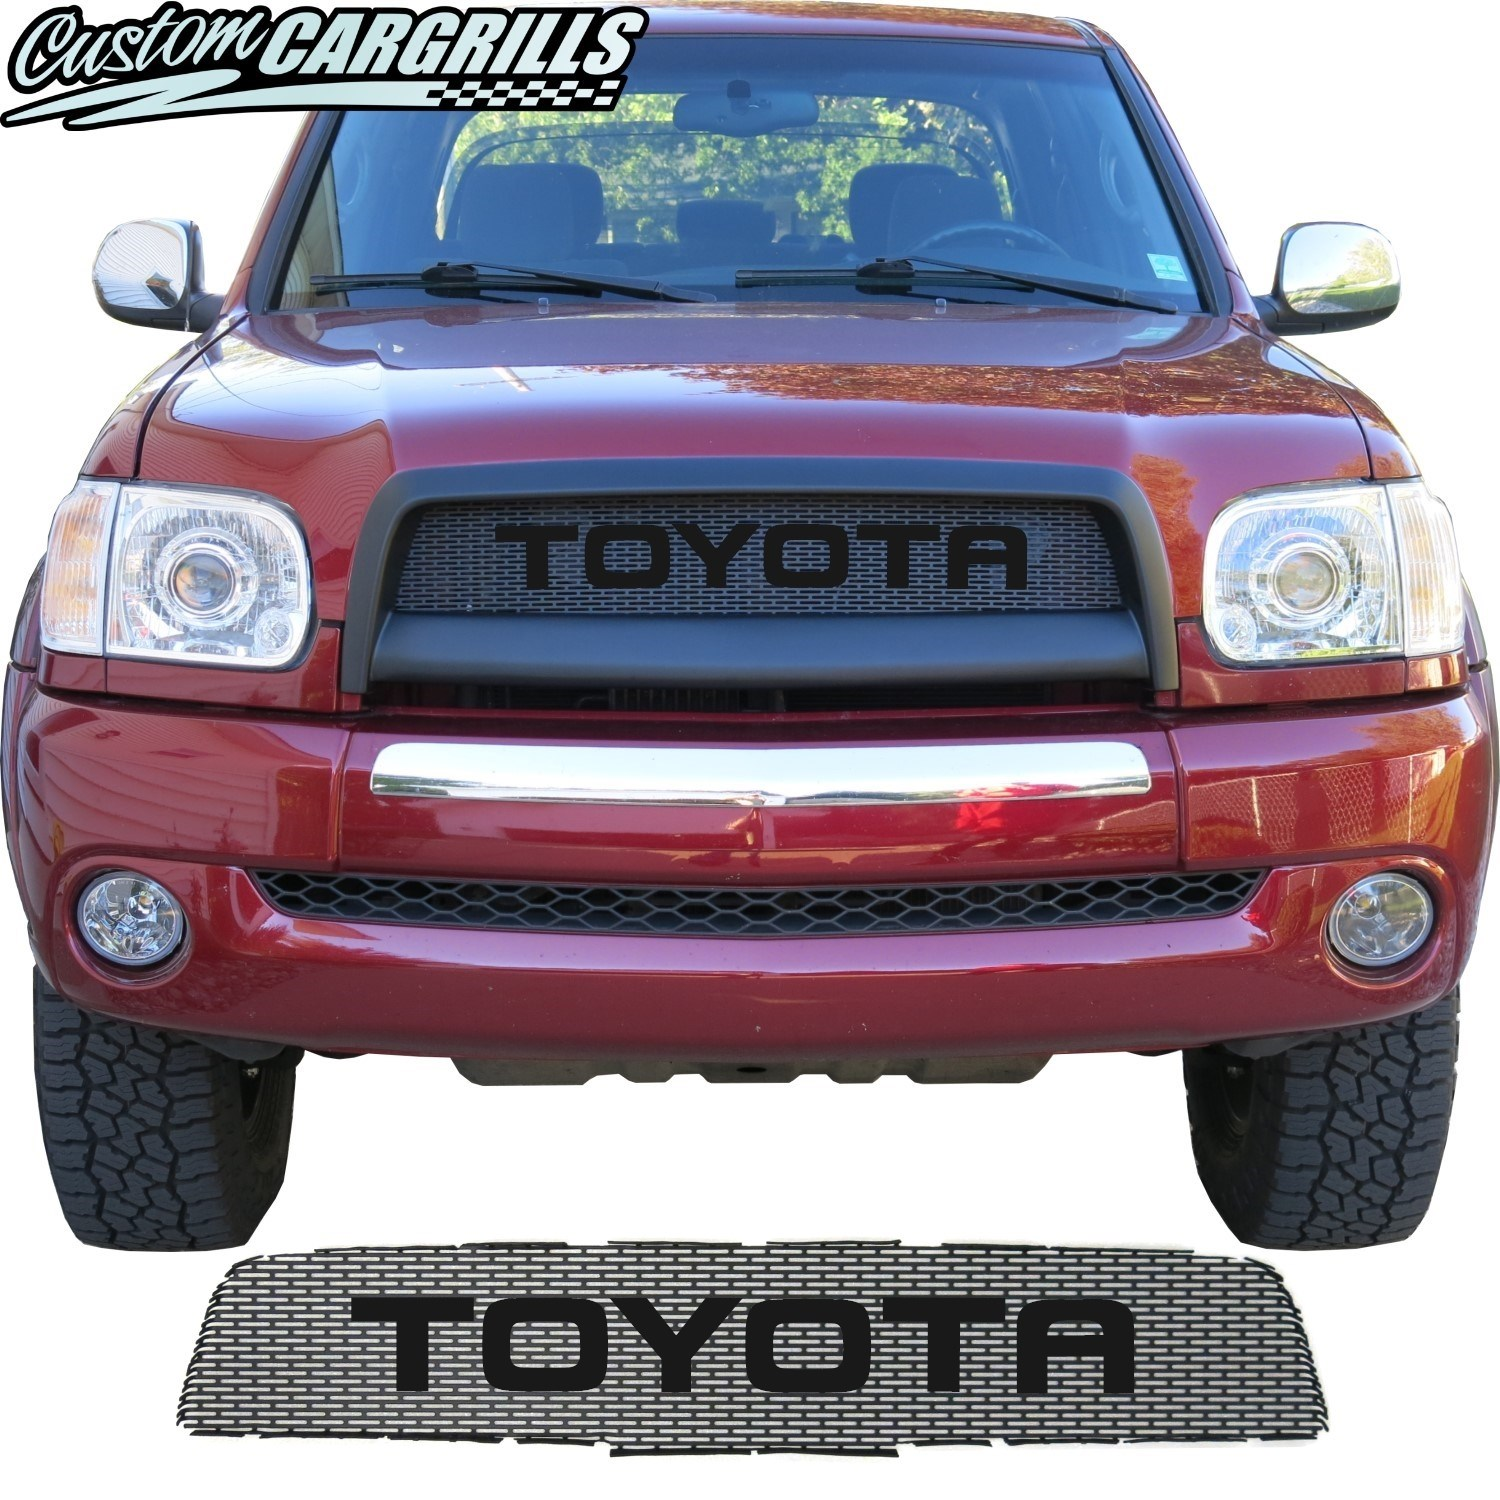 2003-06 Toyota Tundra Grill Mesh with Big Lettering